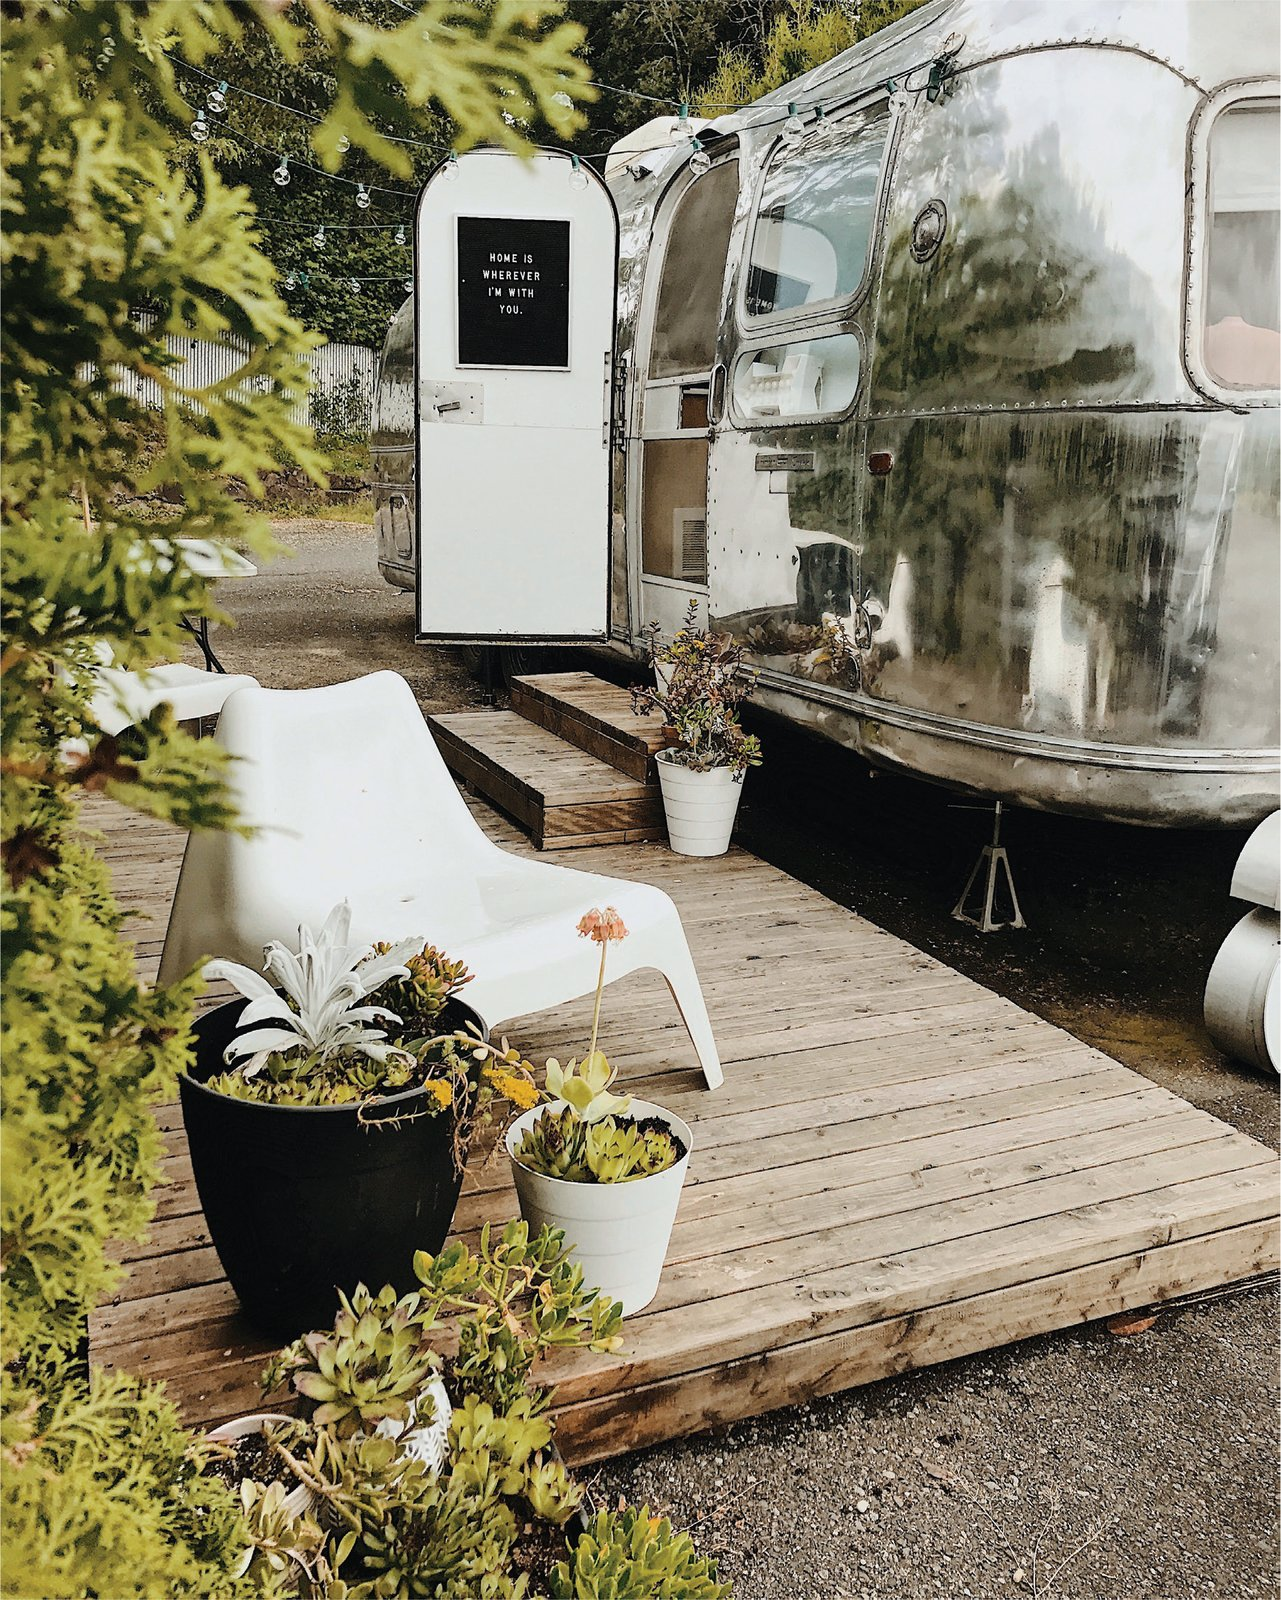 Exterior, Airstream Building Type, Metal Siding Material, Metal Roof Material, and Tiny Home Building Type  Photos from A Couple Transform a Vintage Airstream Into a Scandinavian-Inspired Tiny Home